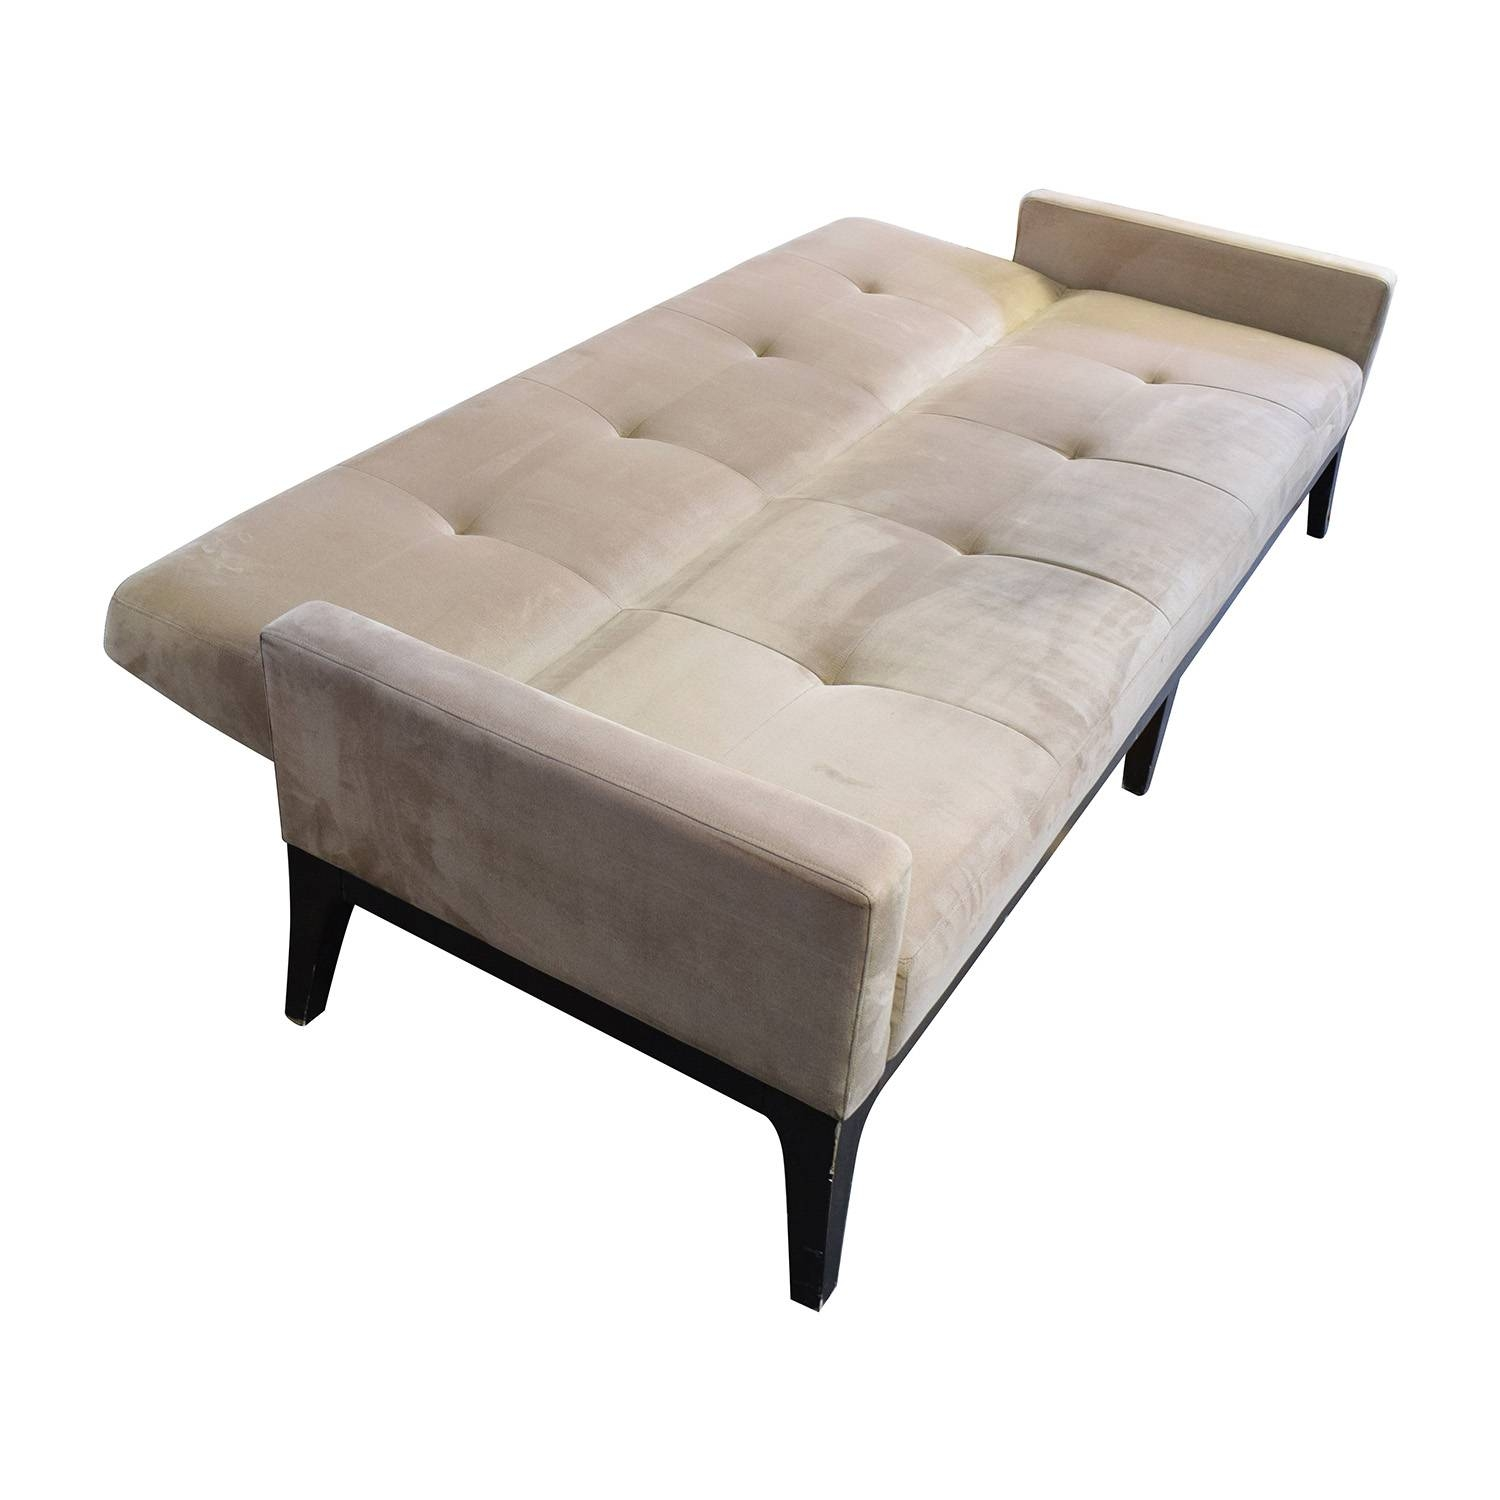 82% Off - Crate And Barrel Crate & Barrel Beige Tufted Futon Sofa for Crate and Barrel Futon Sofas (Image 10 of 15)